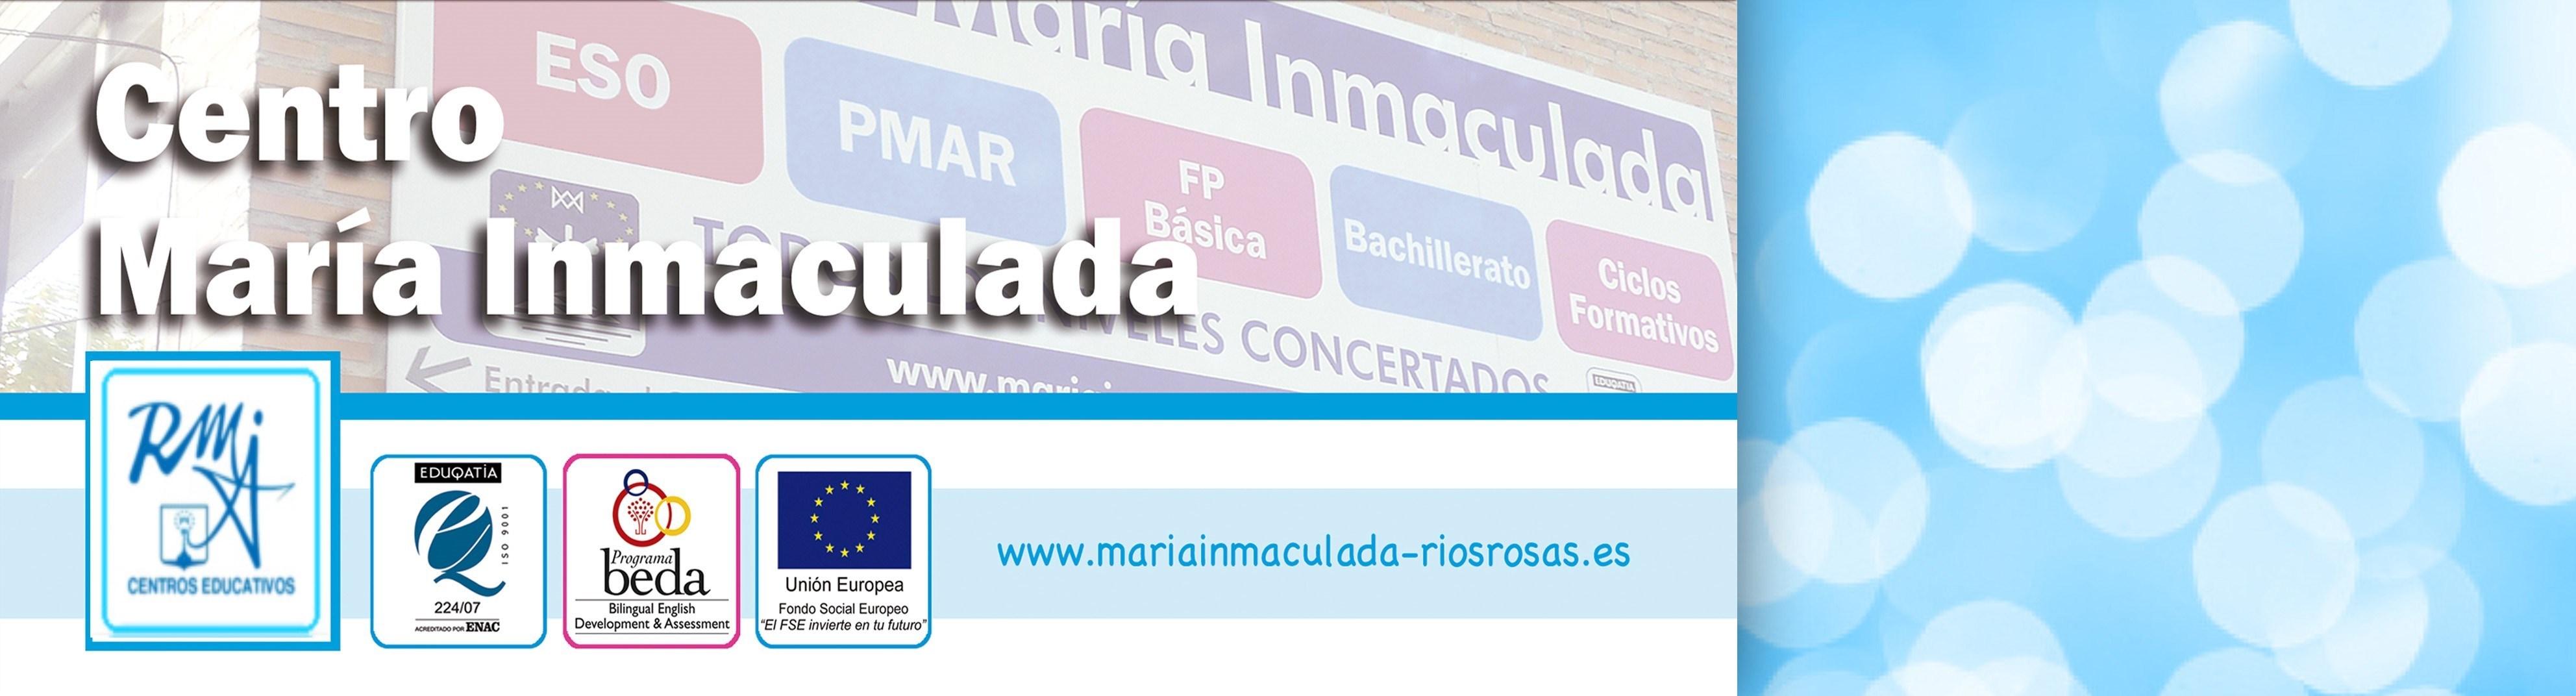 Calendario Escolar 2019 Entre Rios Recientes Colegio Mar­a Inmaculada Of Calendario Escolar 2019 Entre Rios Recientes Colegio Mar­a Inmaculada